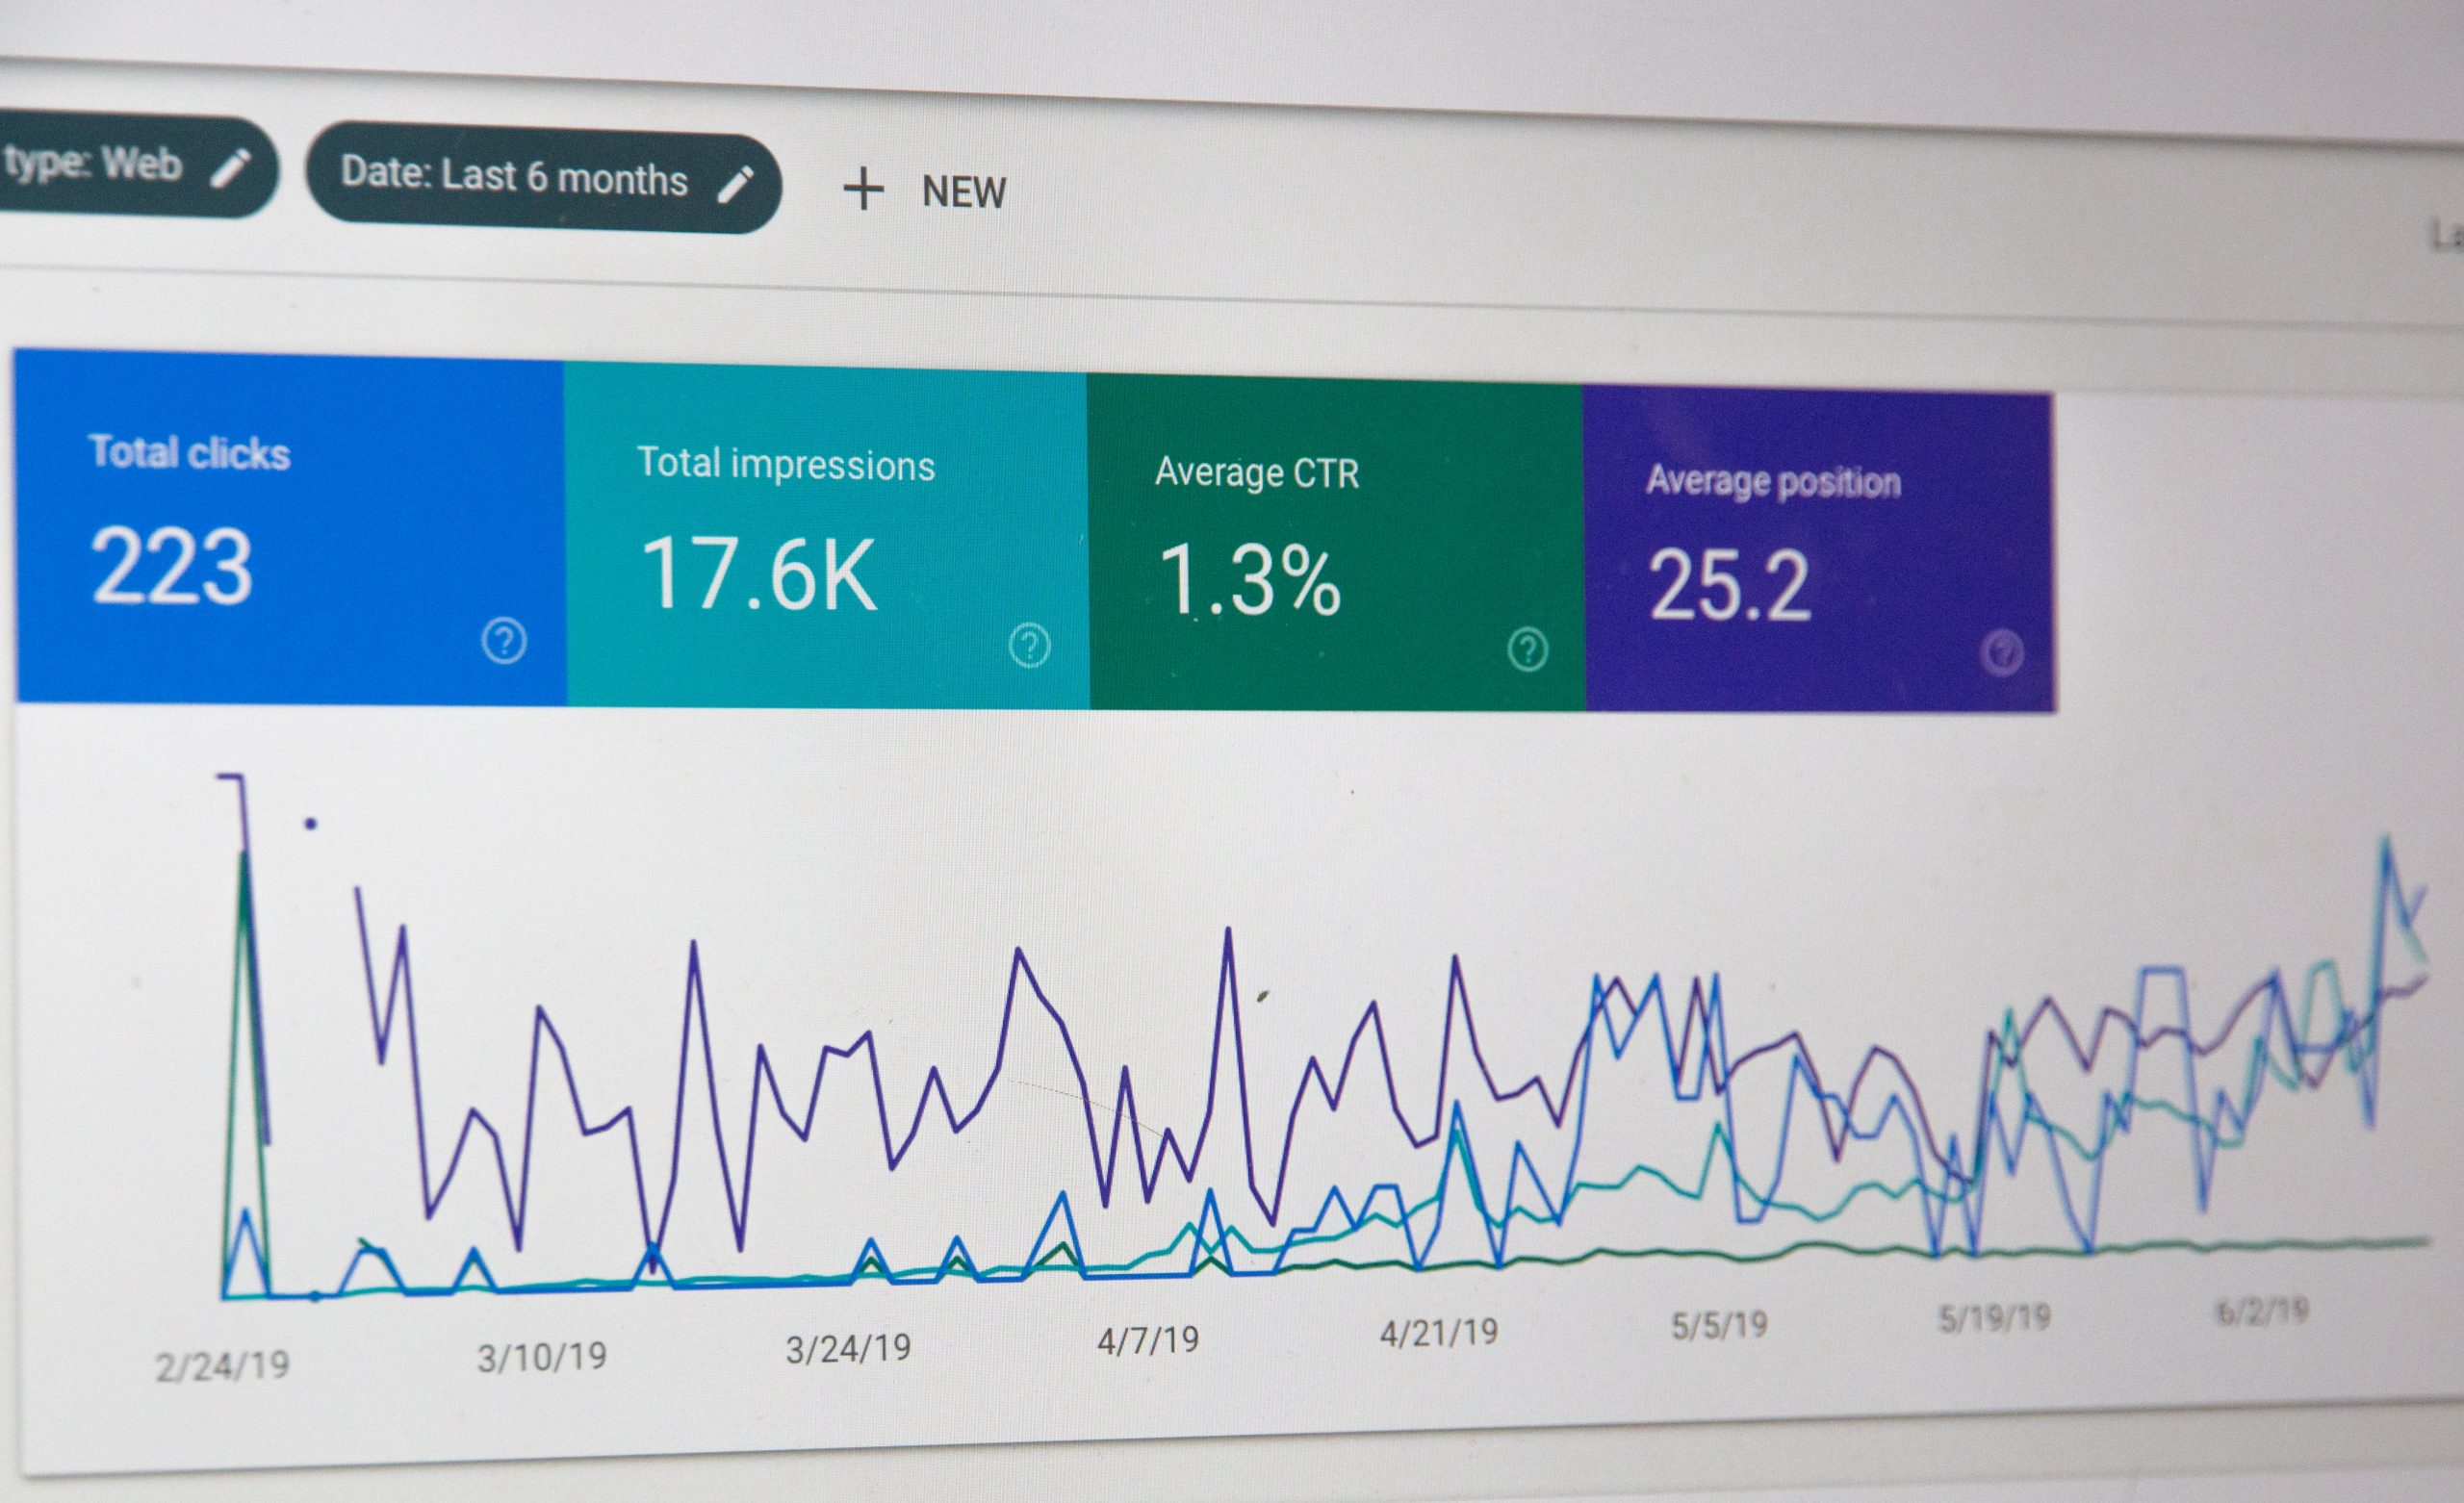 Exemple d'une page Google Analytics